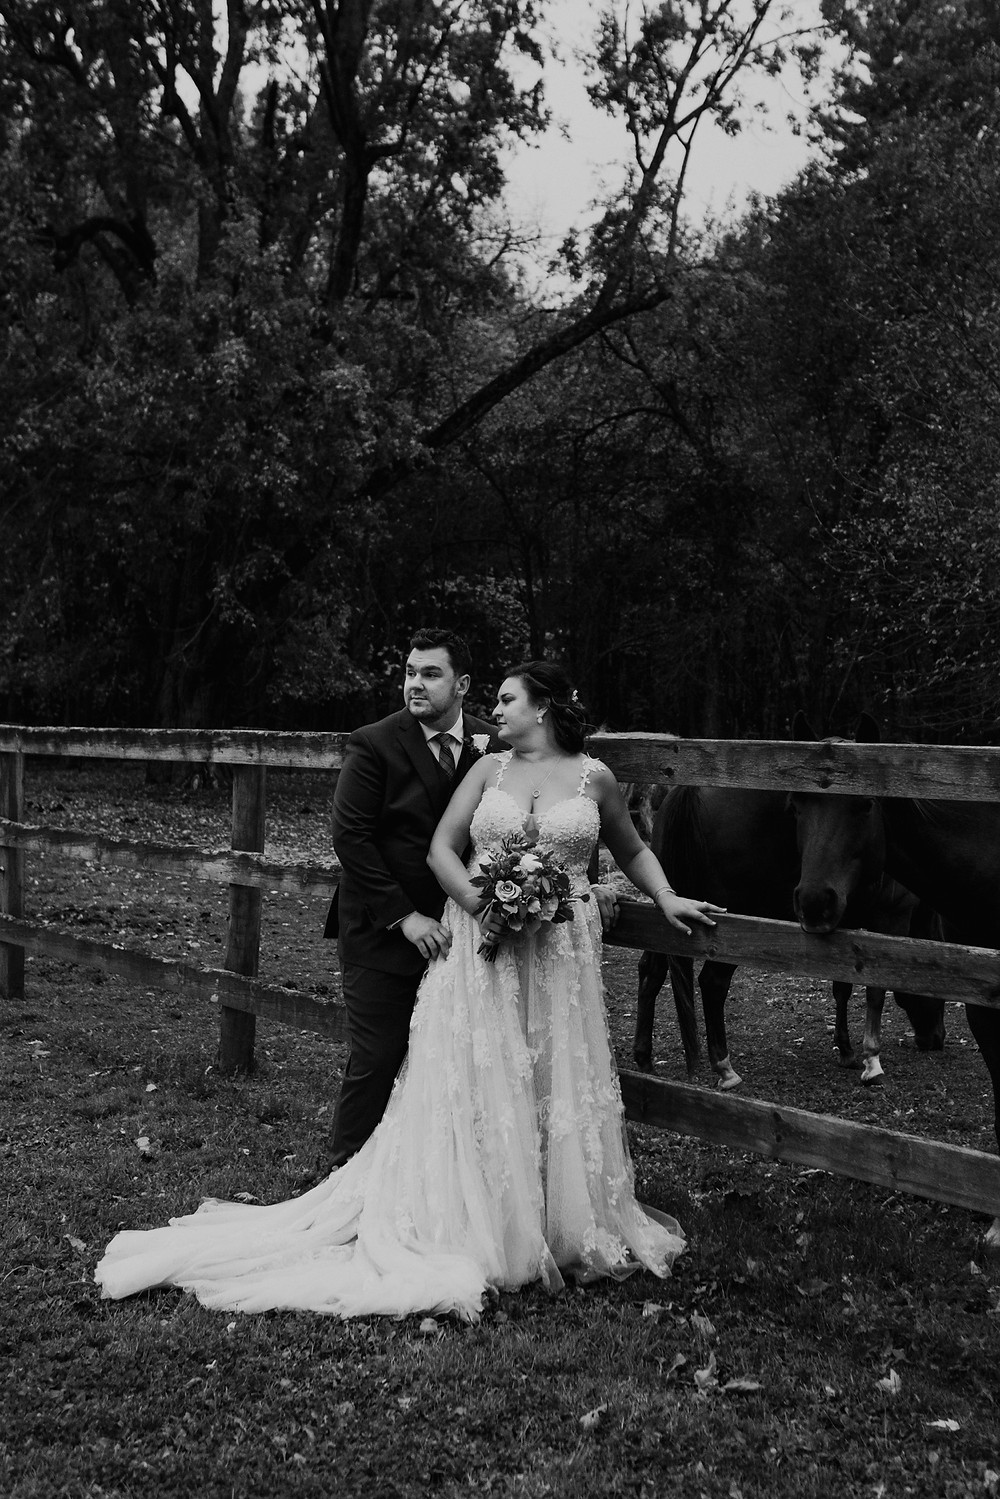 Bride and groom wedding photos with horses